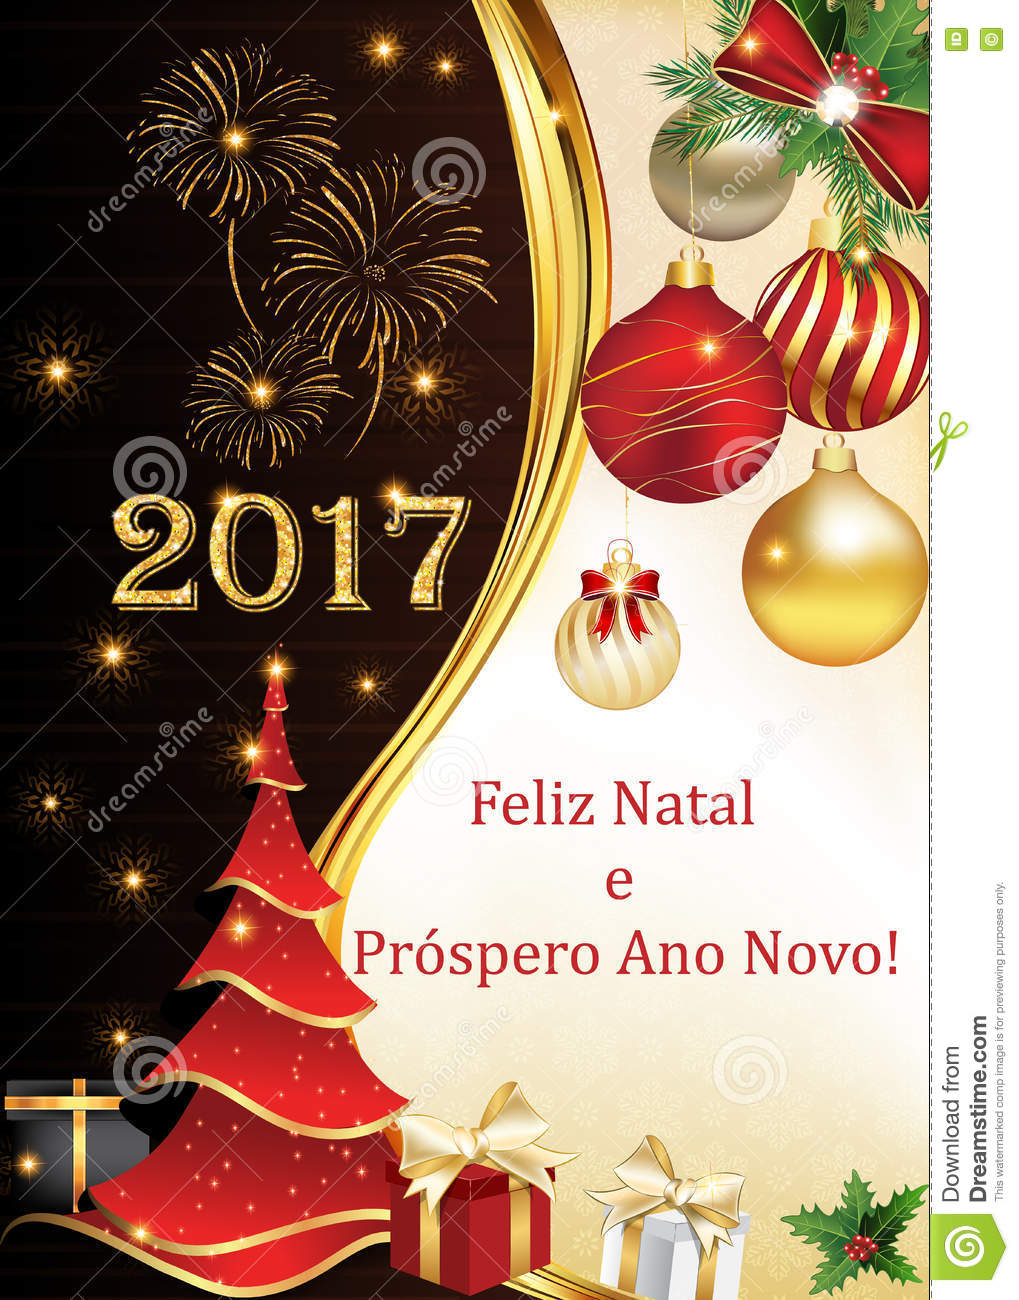 Portuguese business seasons greetings christmas new year card portuguese business seasons greetings christmas new year card kristyandbryce Image collections